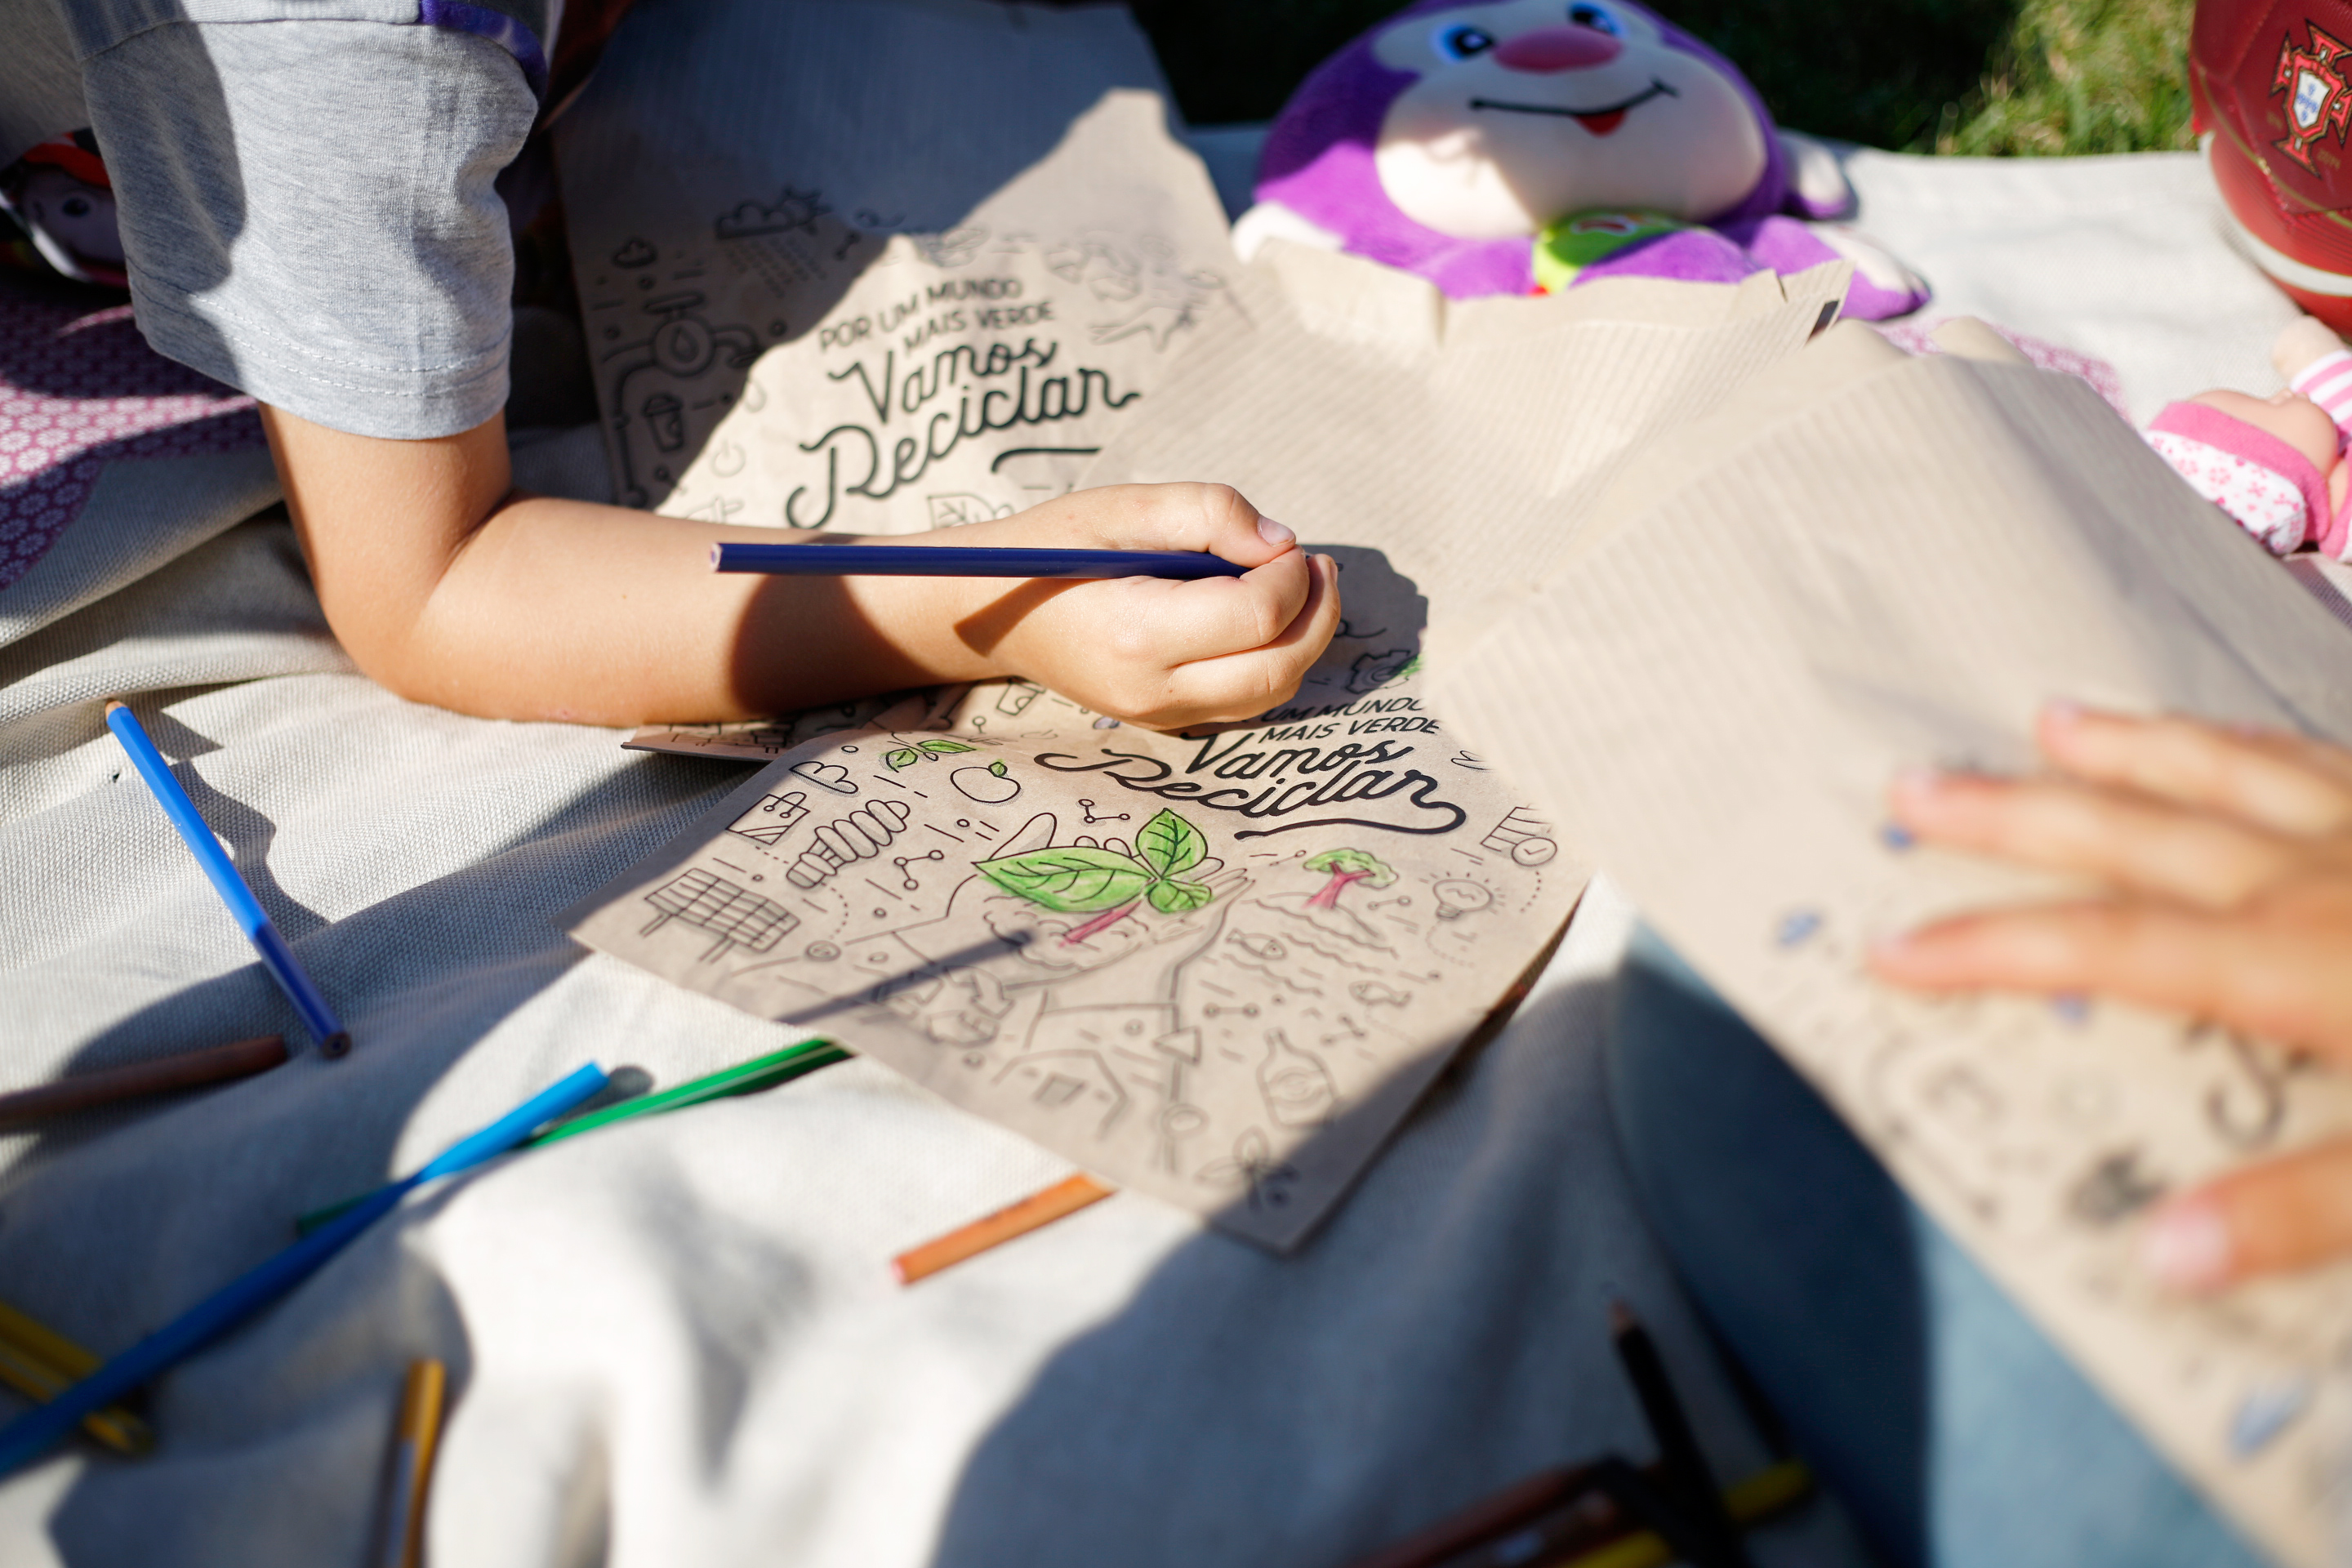 Bolseira's World: Conscientious bags full of children's dreams